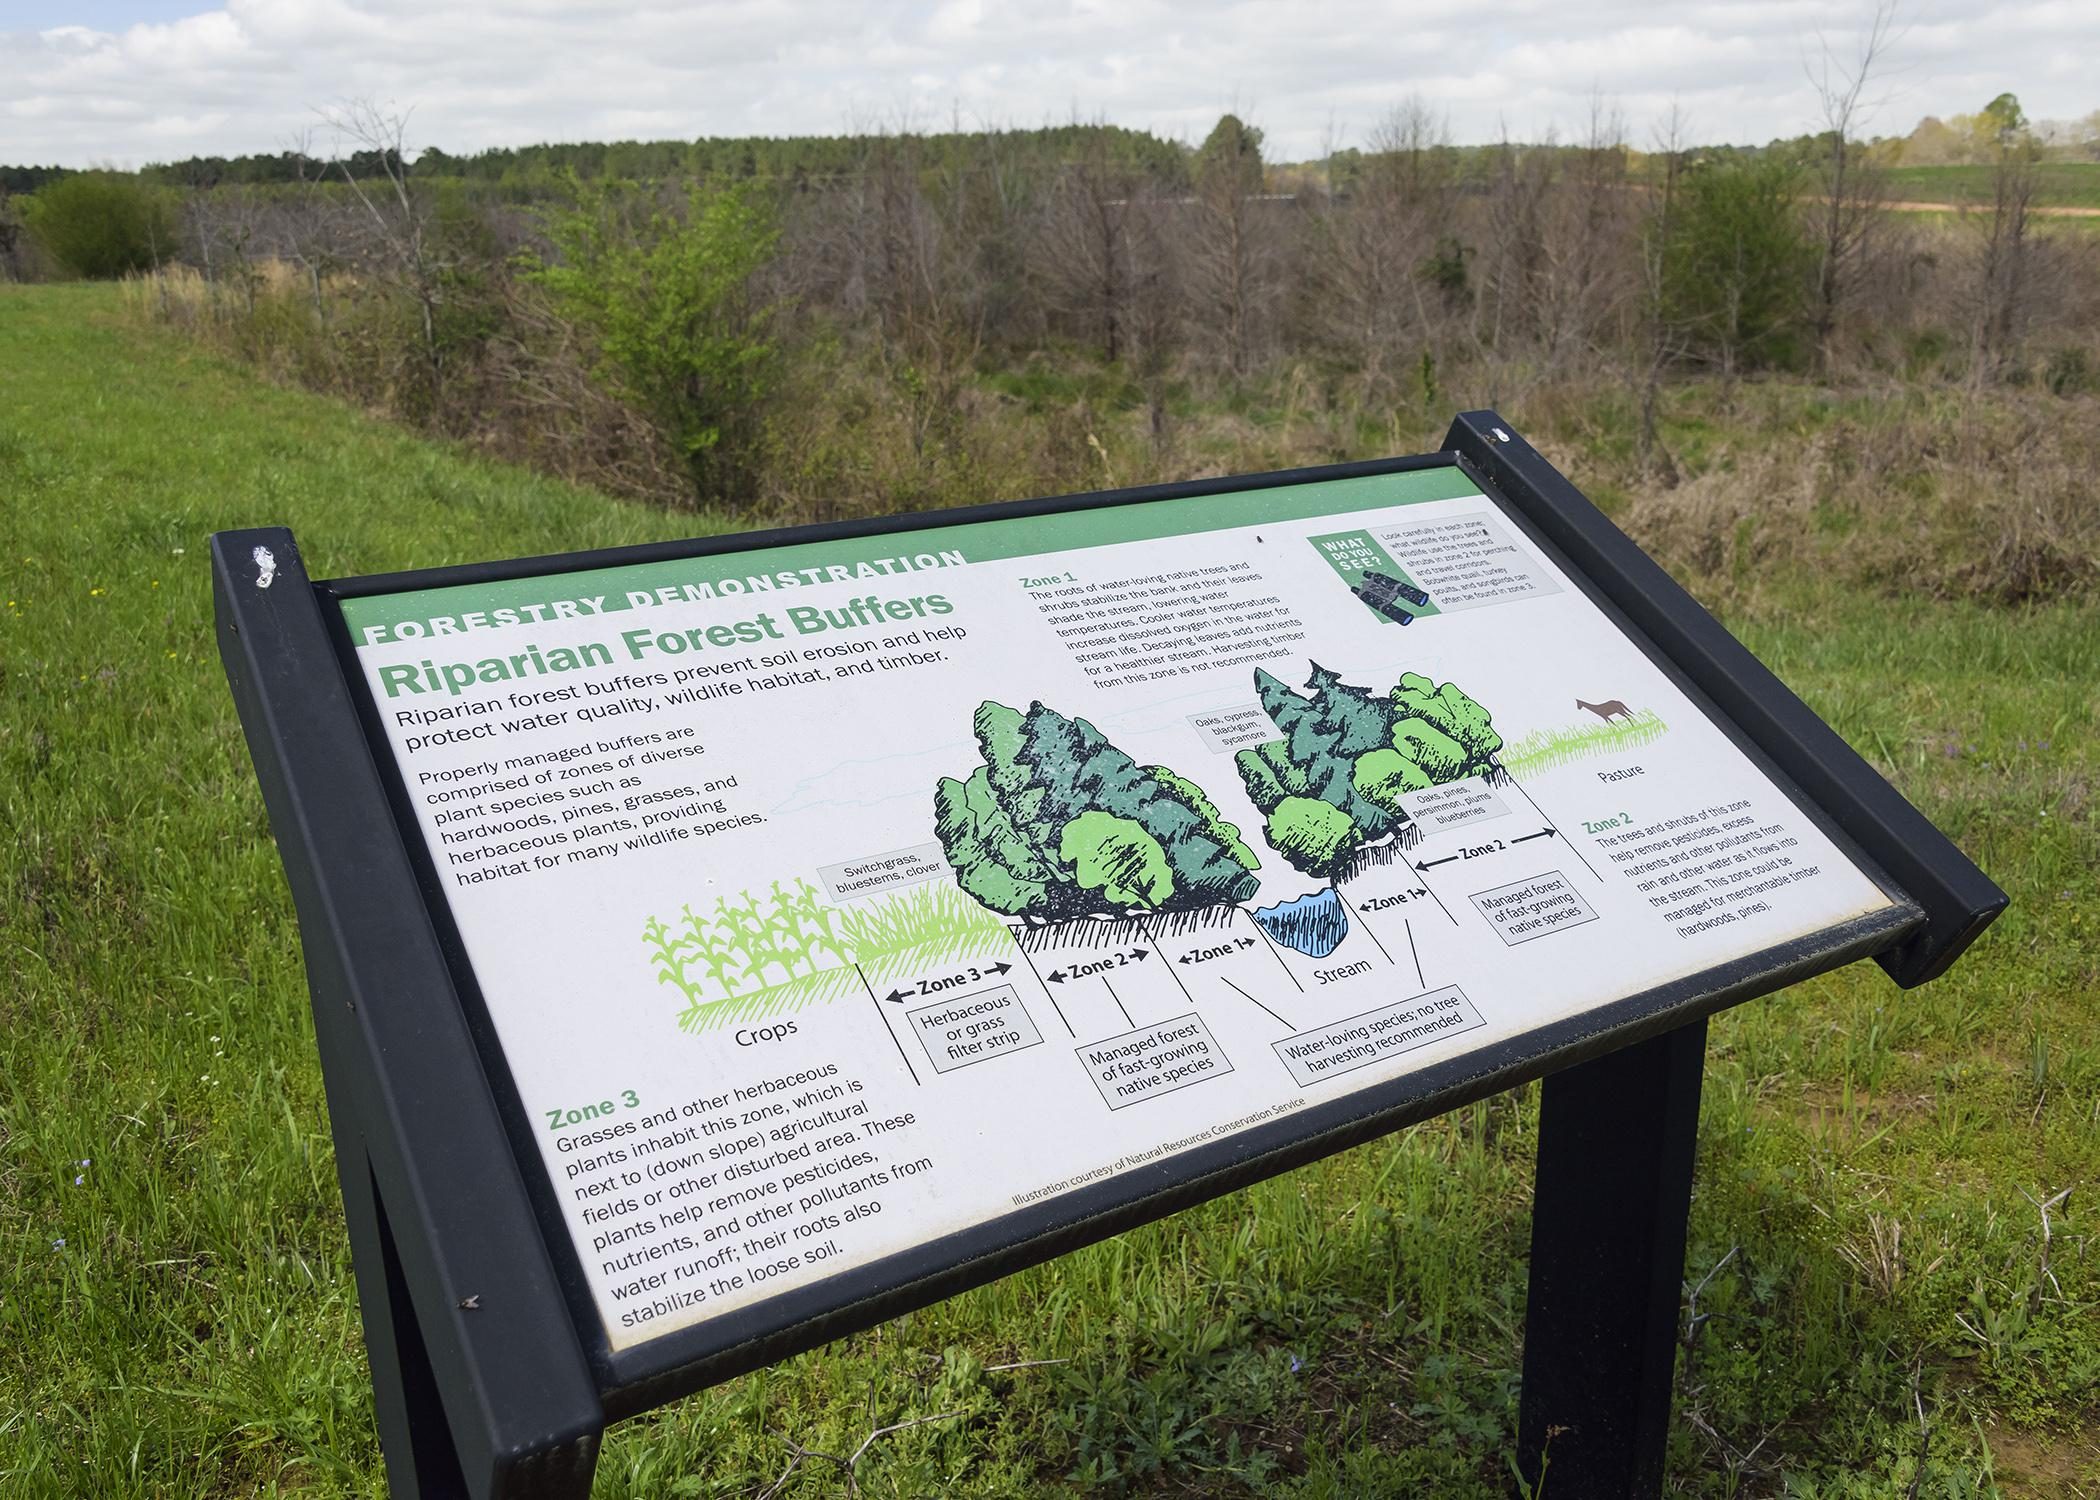 Educational signs, such as this one on properly managing riparian forest buffers, are placed at each demonstration area at the Coastal Plain Branch Experiment Station in Newton, Mississippi. Three of the planned five demonstration areas are complete, including the backyard habitat, the nature trail and lake, and an 80-acre mixed pine and hardwood timber stand. (Photo by MSU Ag Communications/Kevin Hudson)